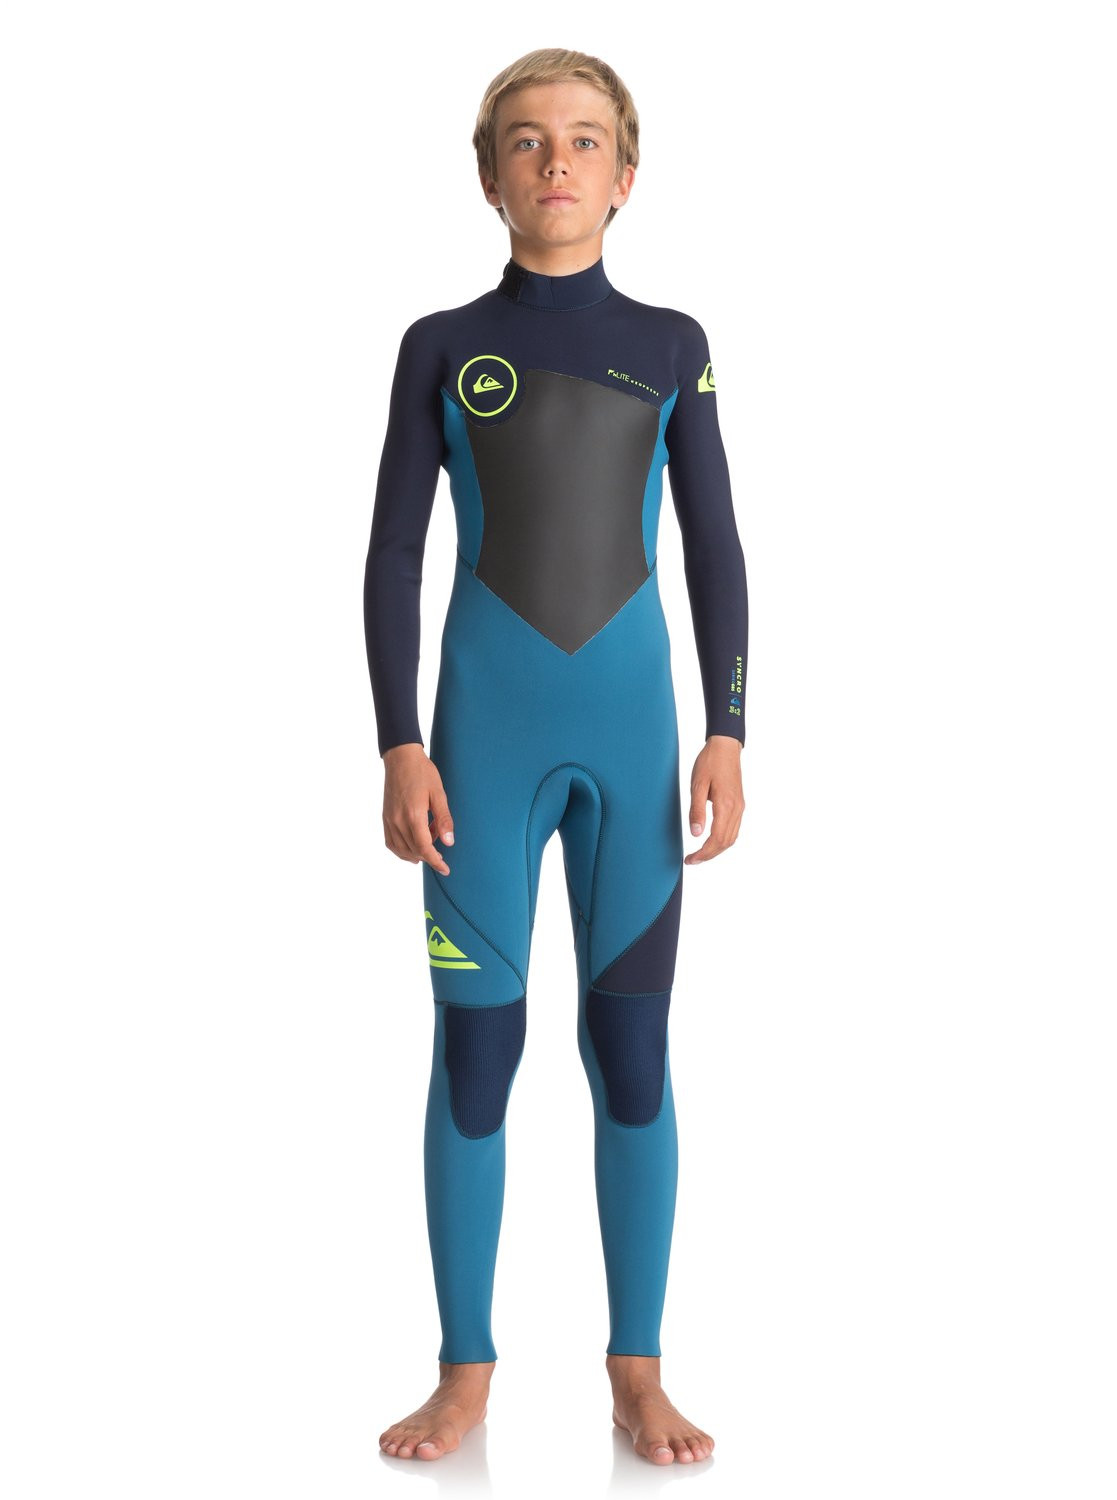 QUIKSILVER SYNCRO SERIES 3/2 WETSUIT